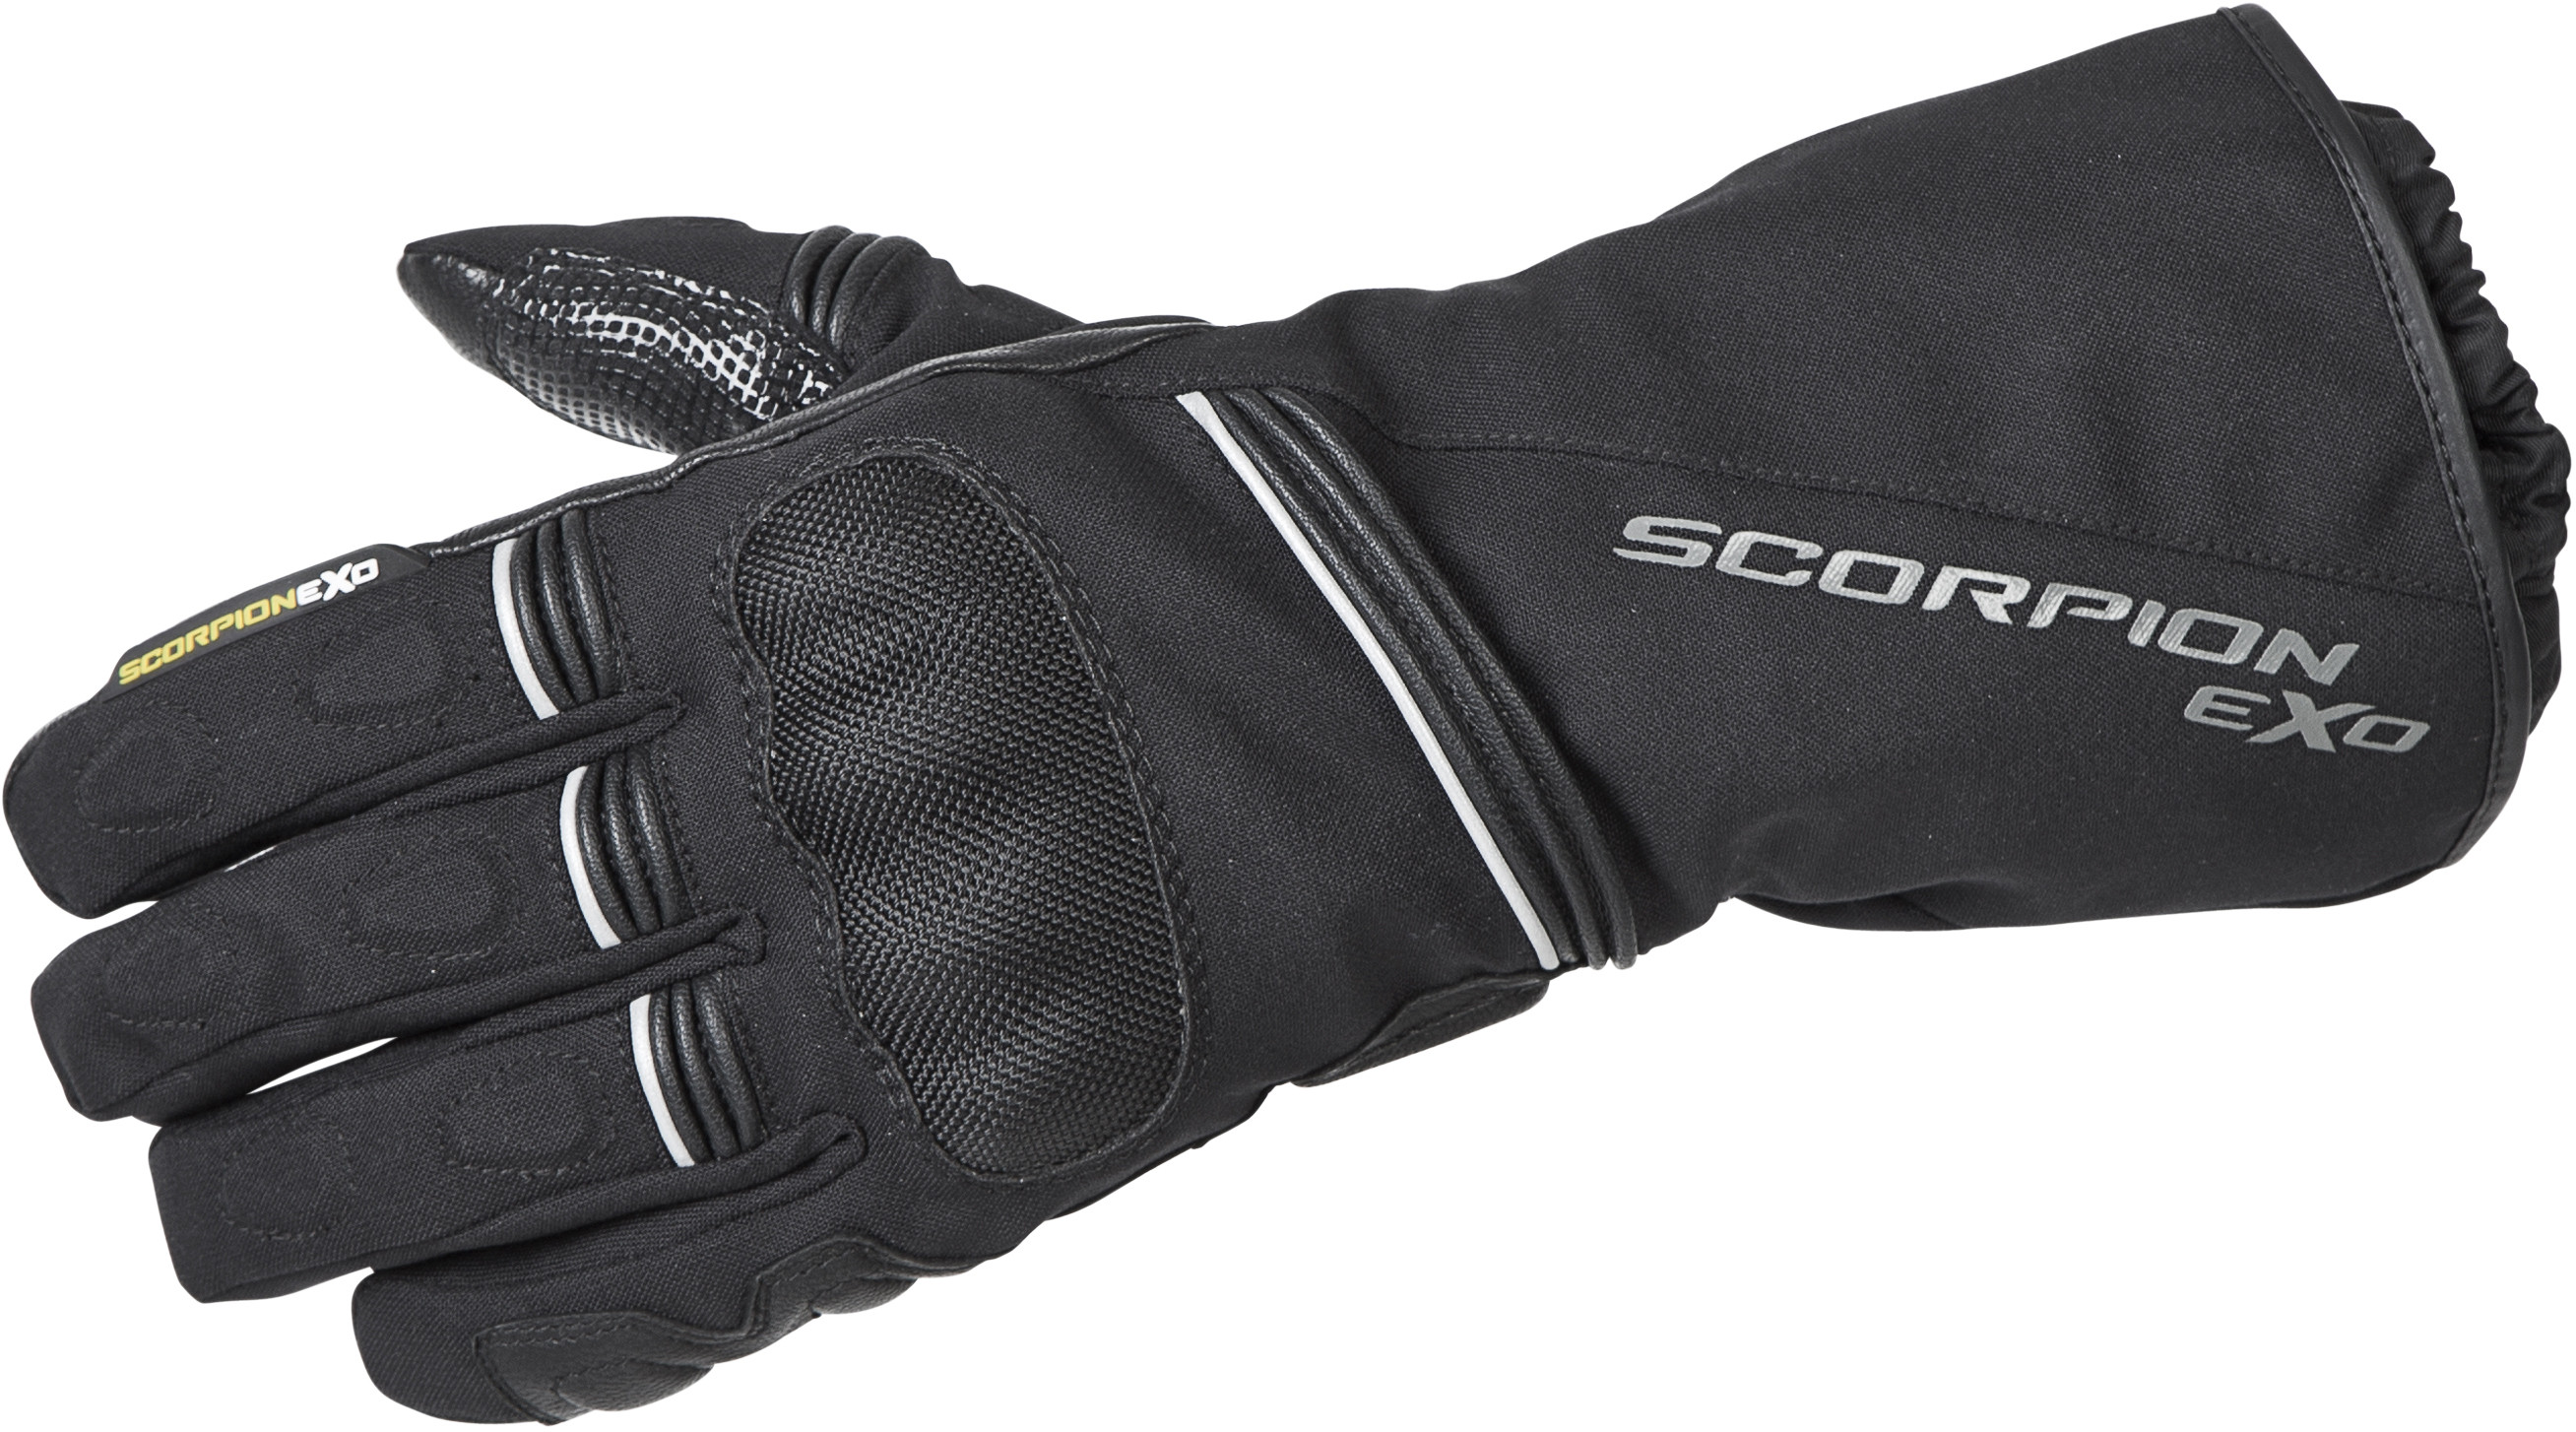 TEMPEST COLD WEATHER GLOVES BLACK 2X